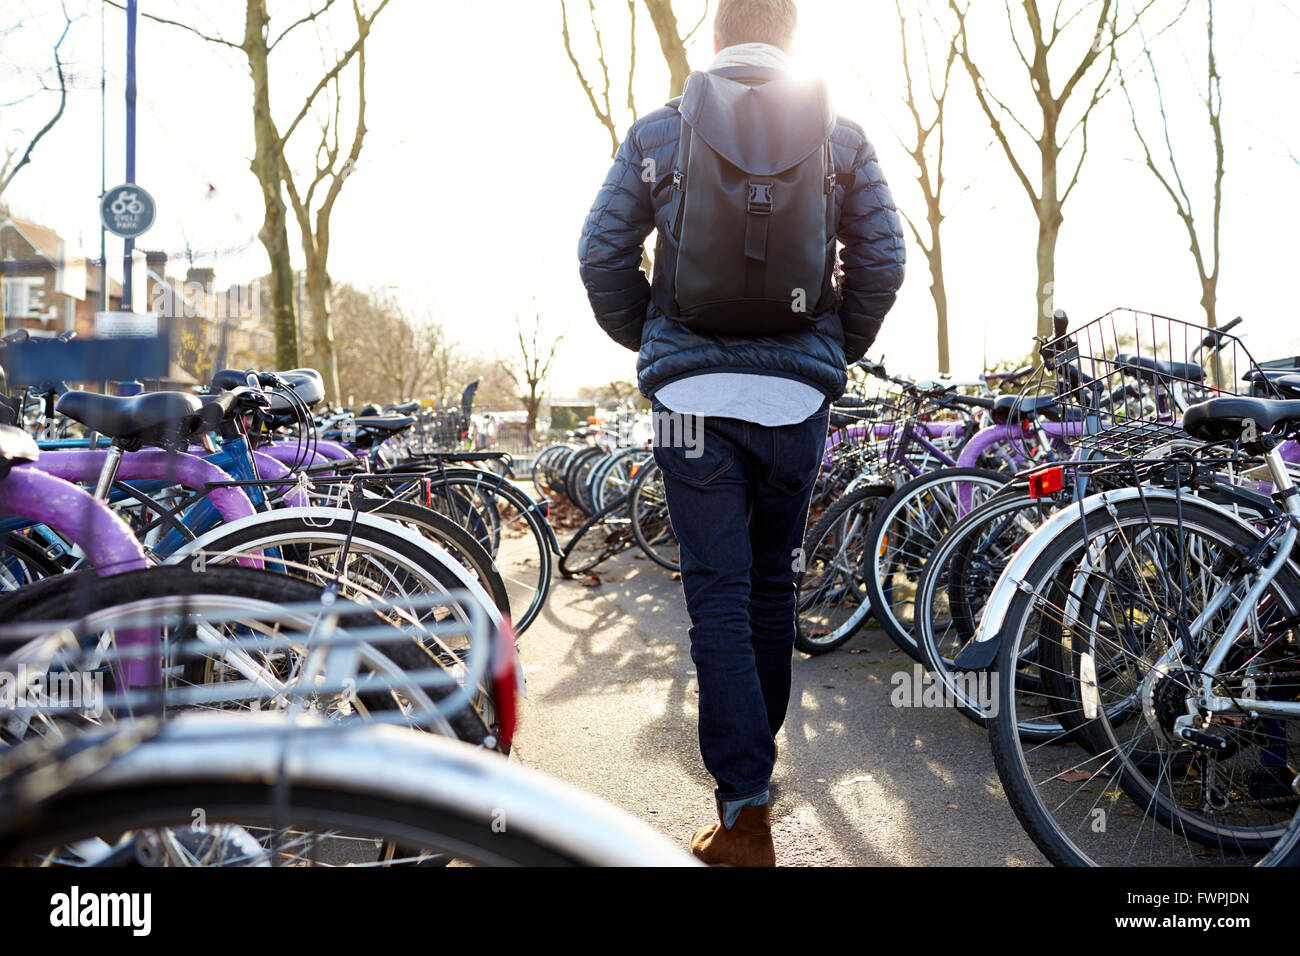 Rear View Of Man Leaving Bike In Cycle Park At Rail Station - Stock Image